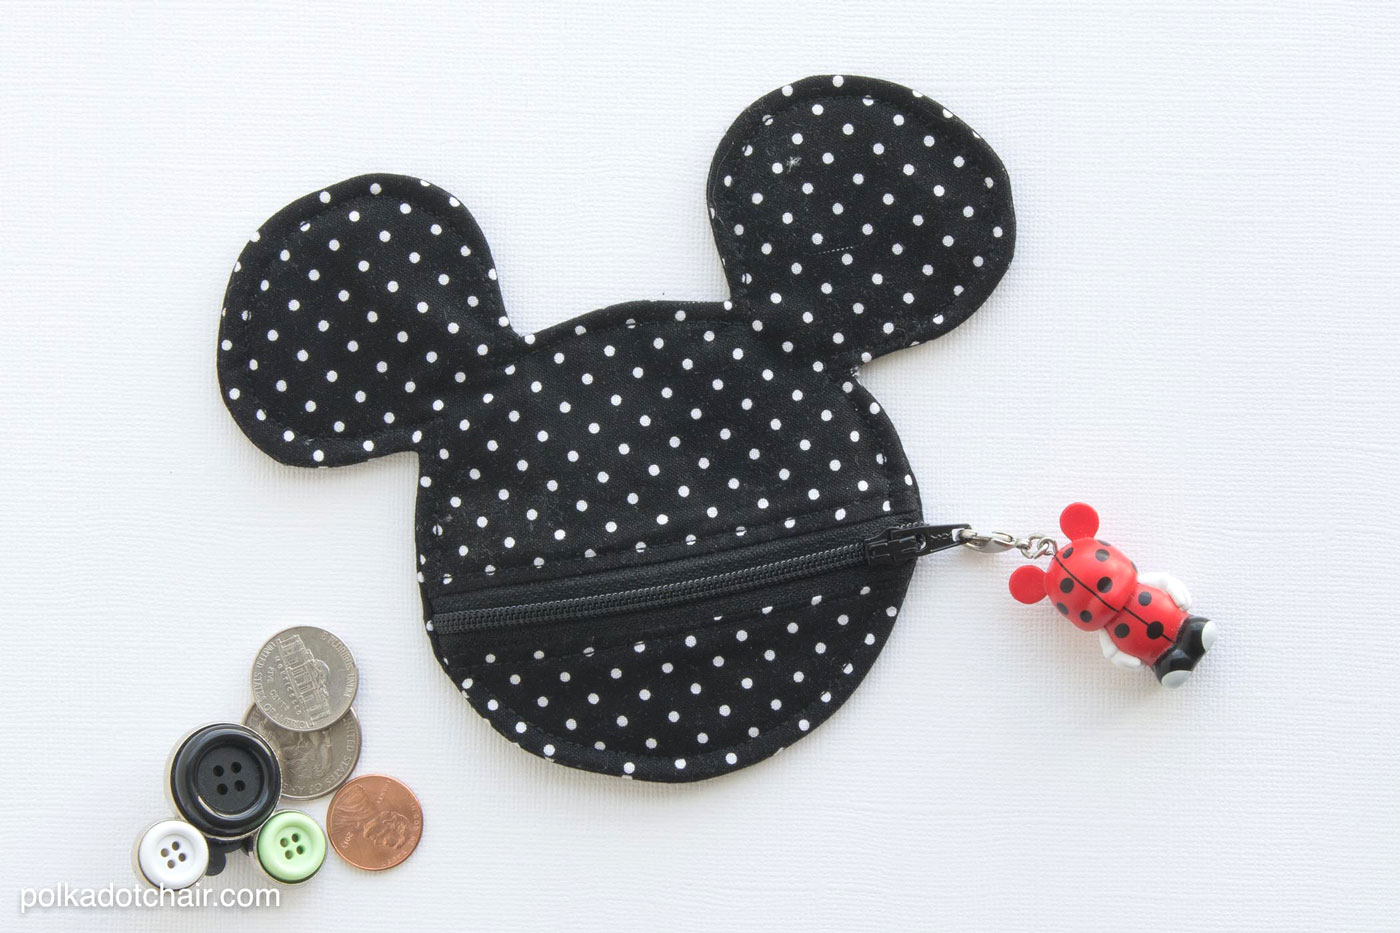 free sewing pattern for a mickey mouse inspired coin pouch